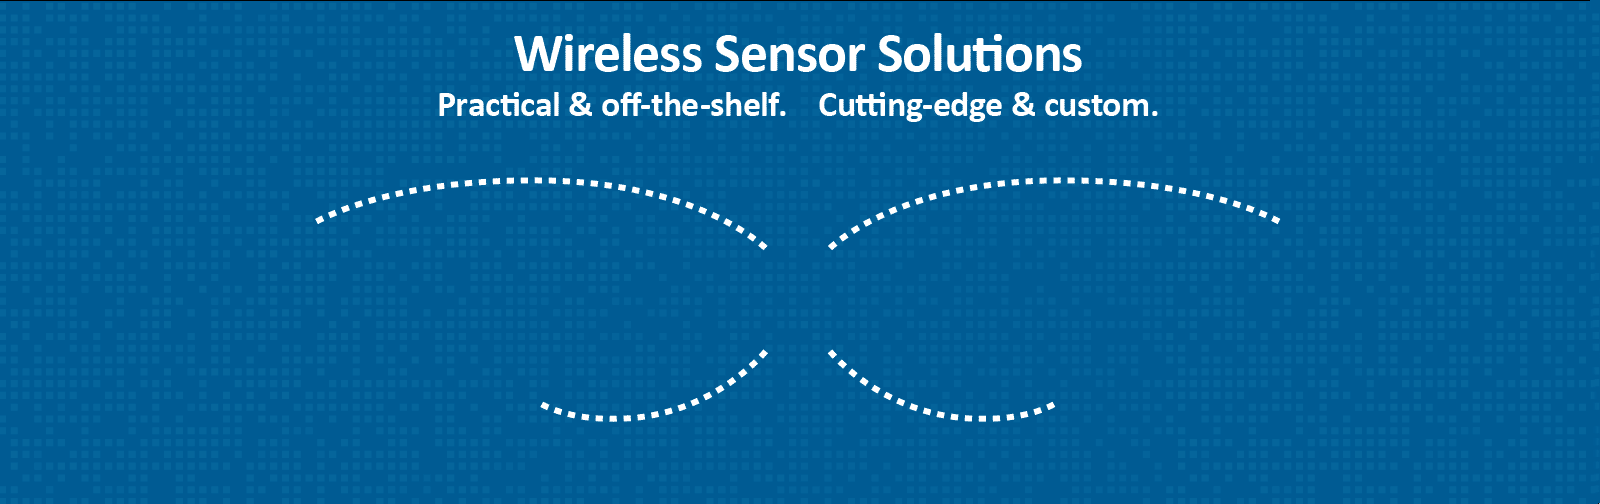 wireless-sensor-solutions-bg